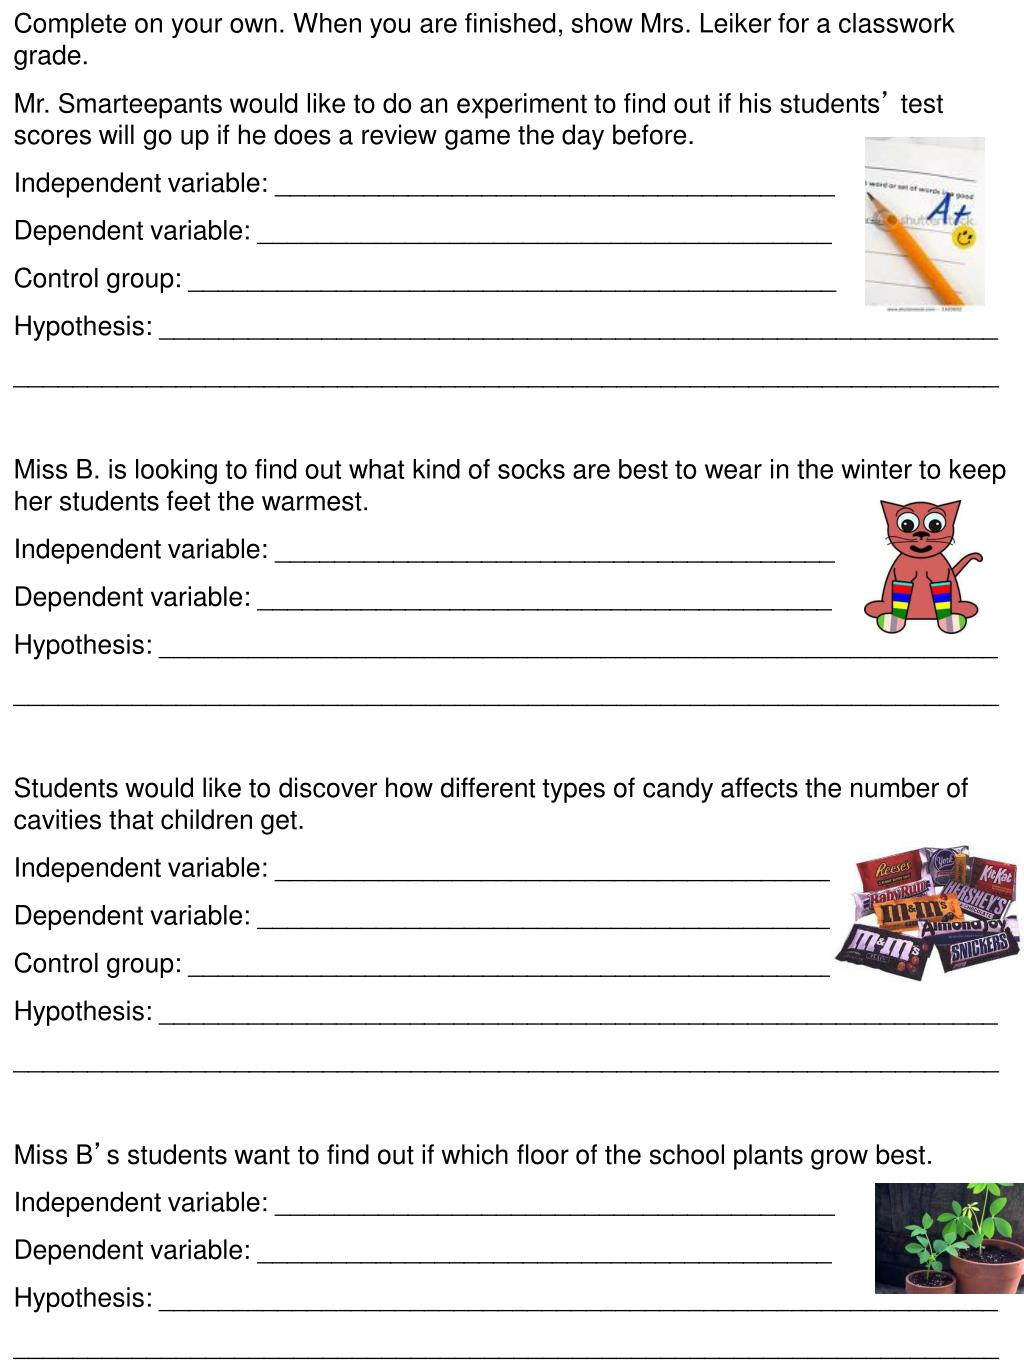 PPT - Name Date ______ Parts of an experiment worksheet ...